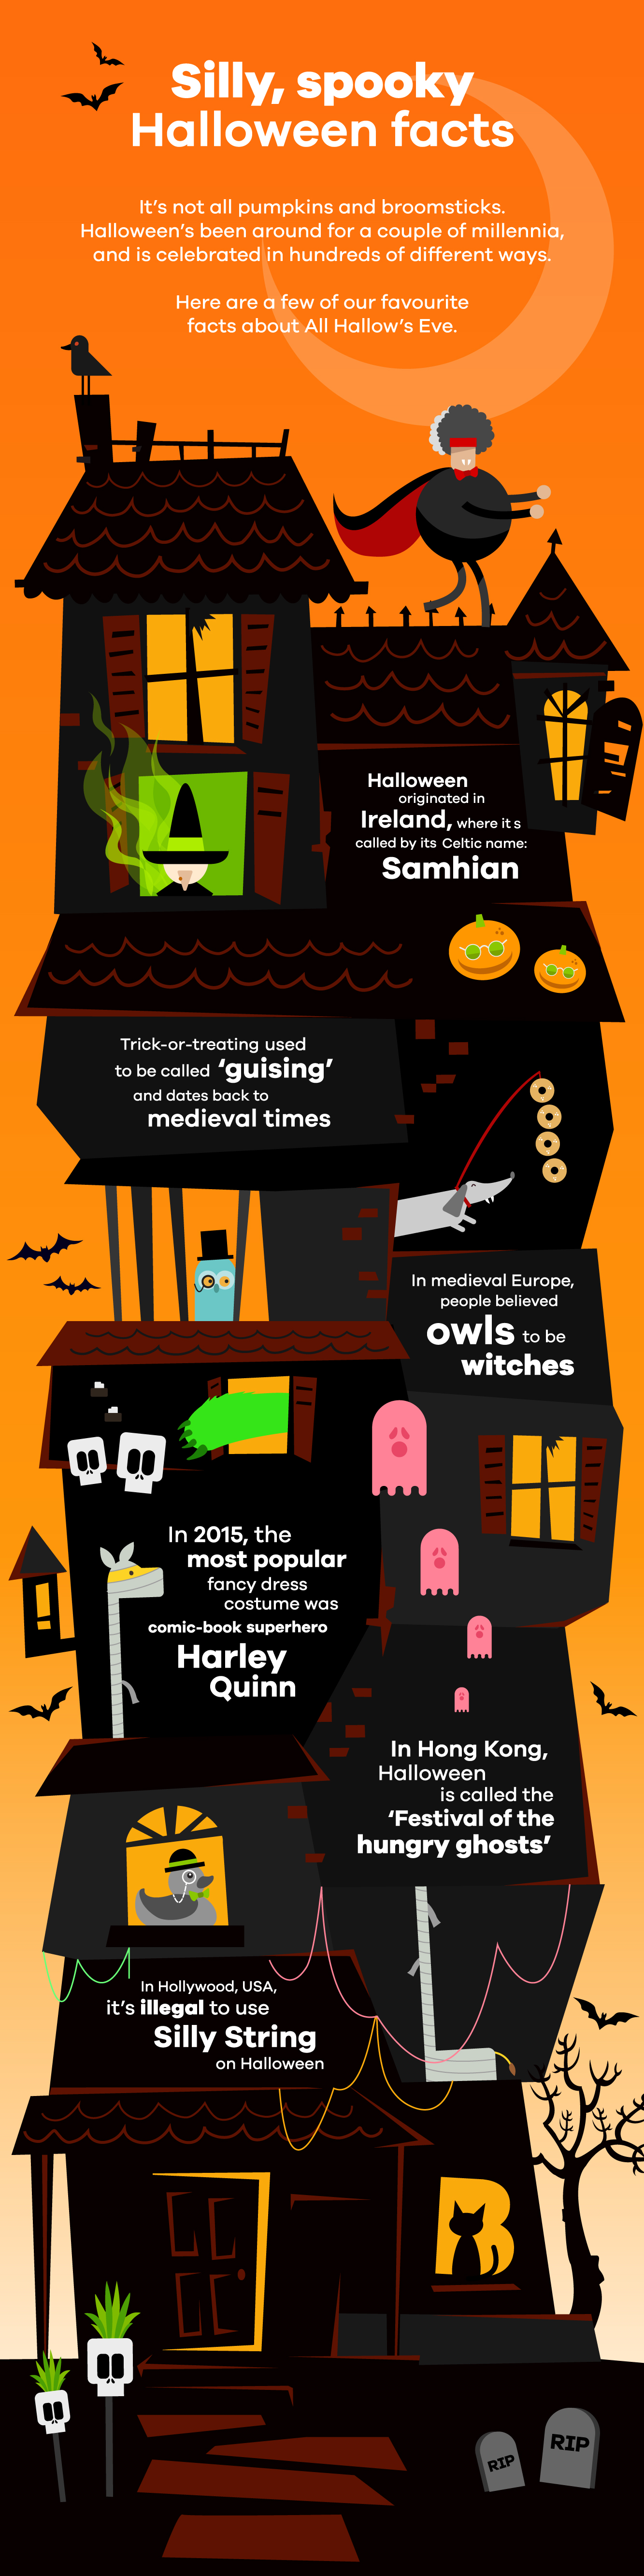 halloween facts & quick costume ideas from the team at b